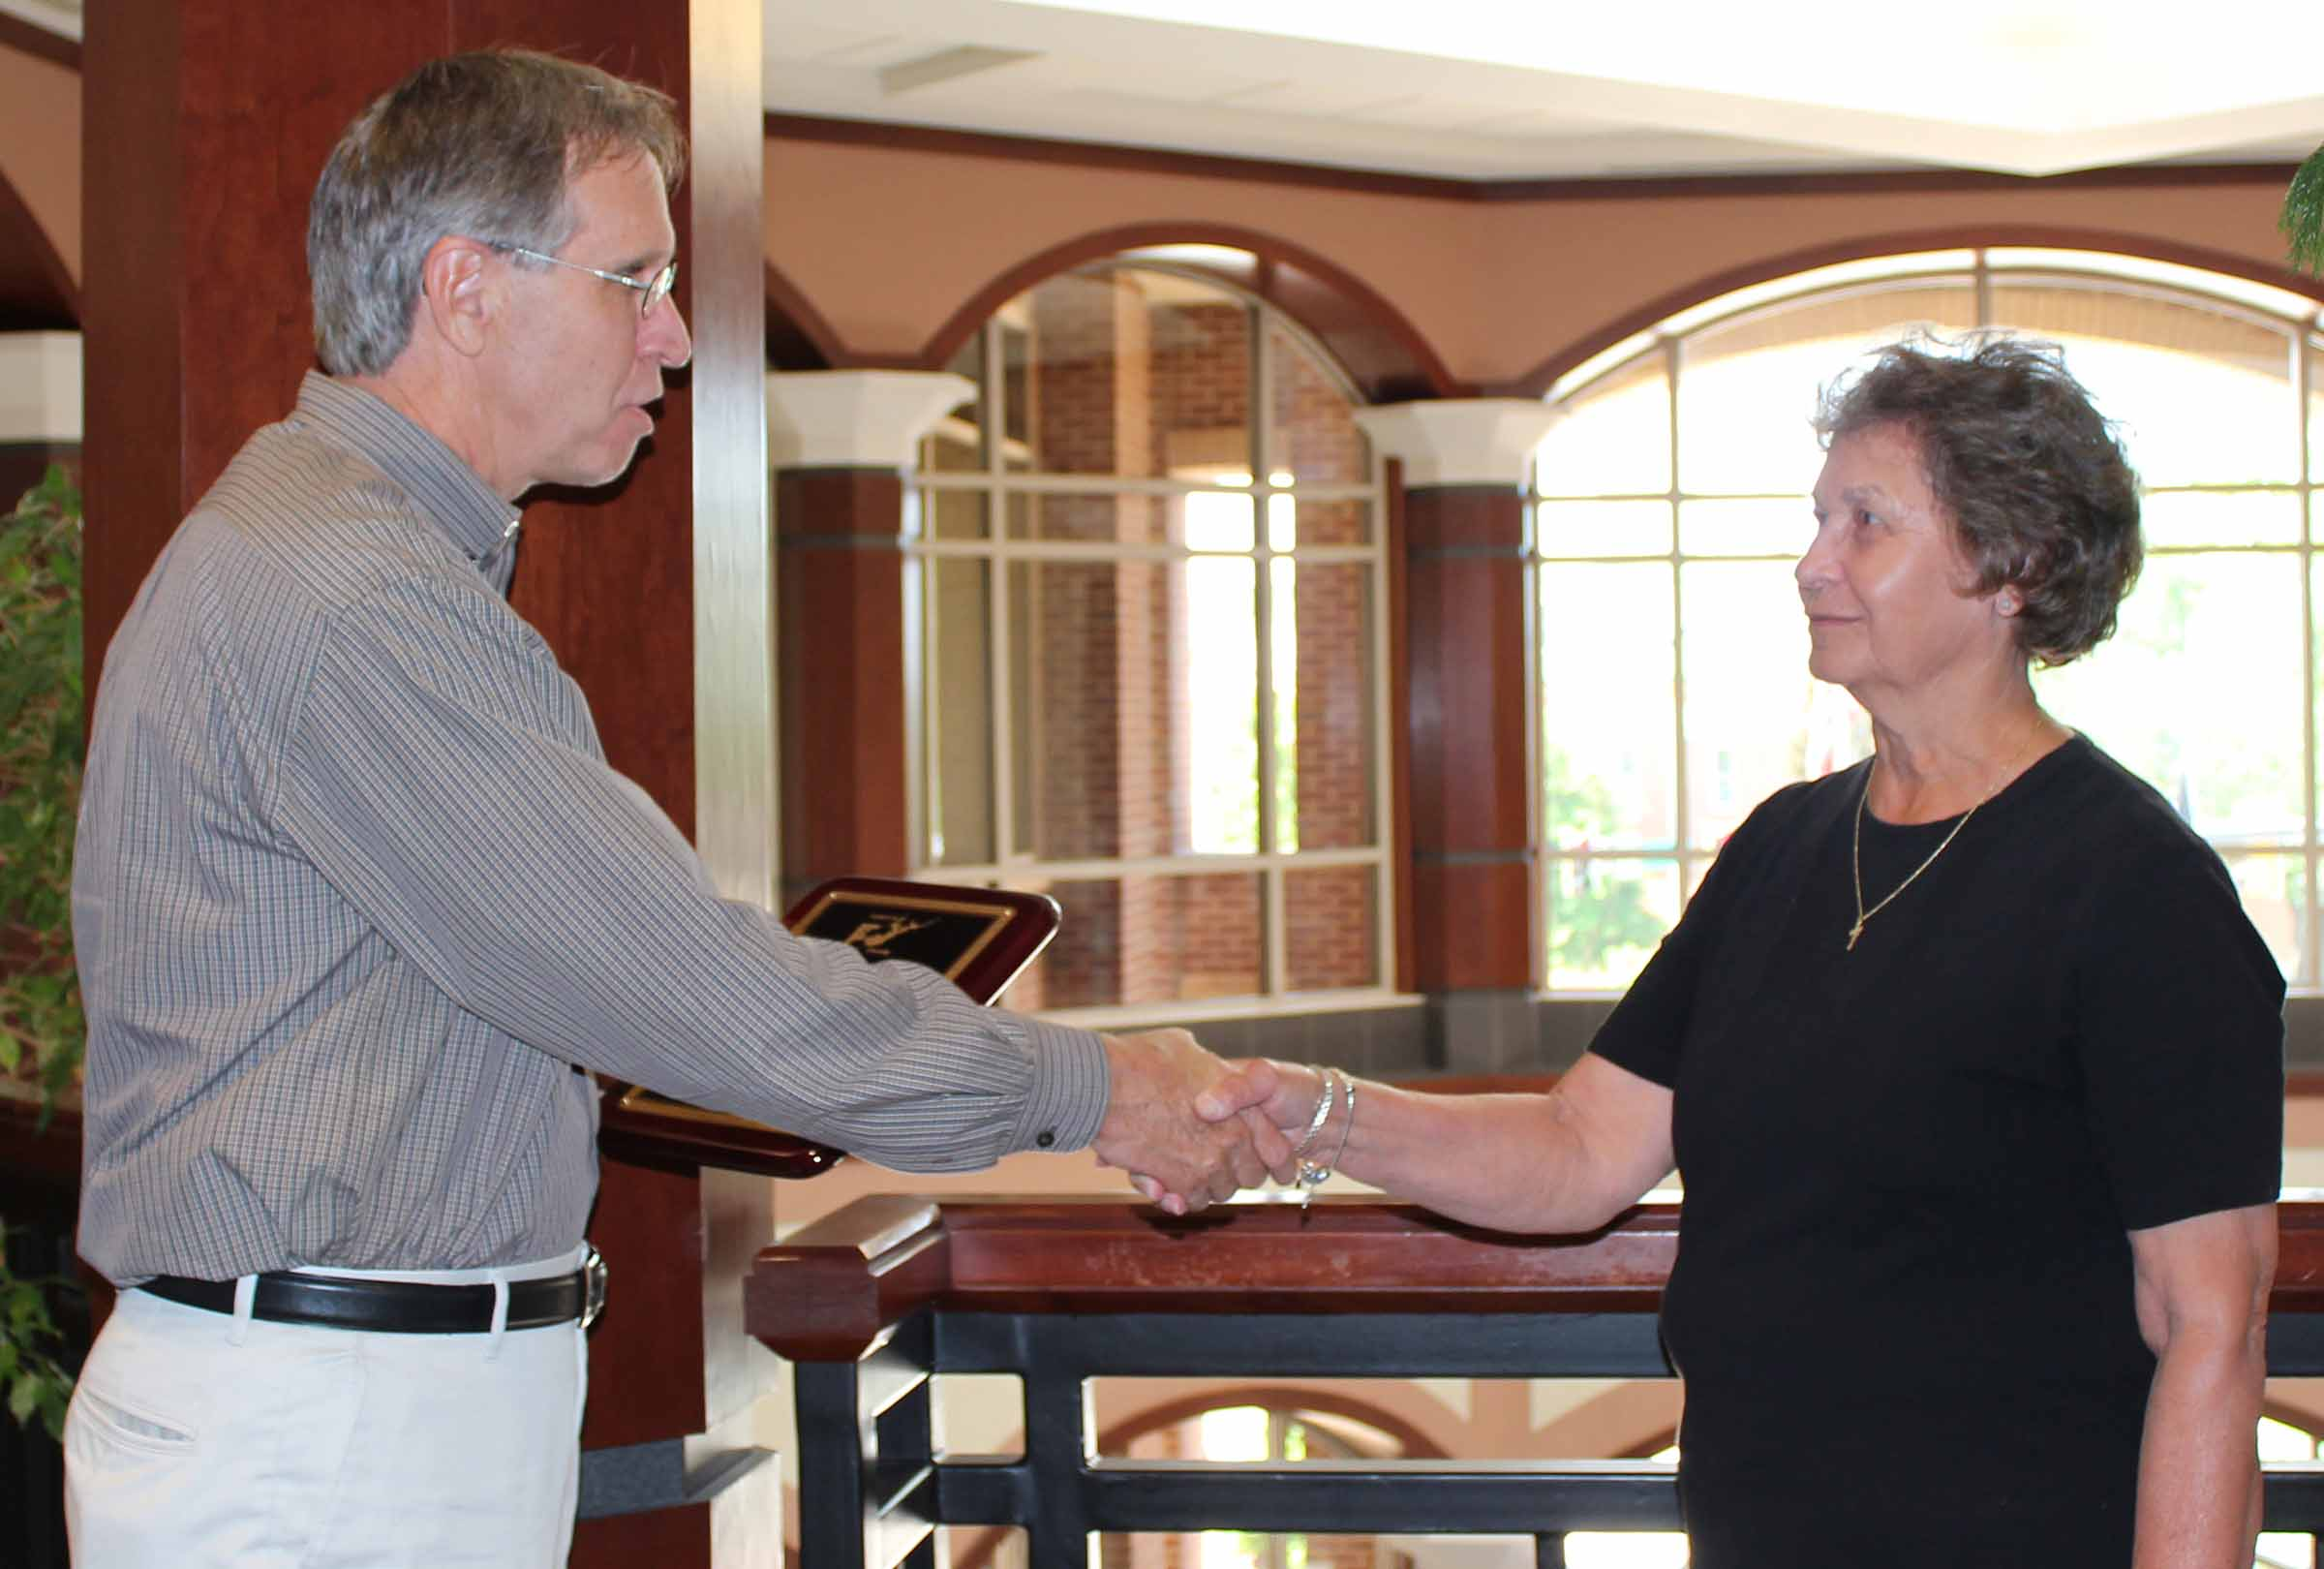 Carder Recognized by County Manager